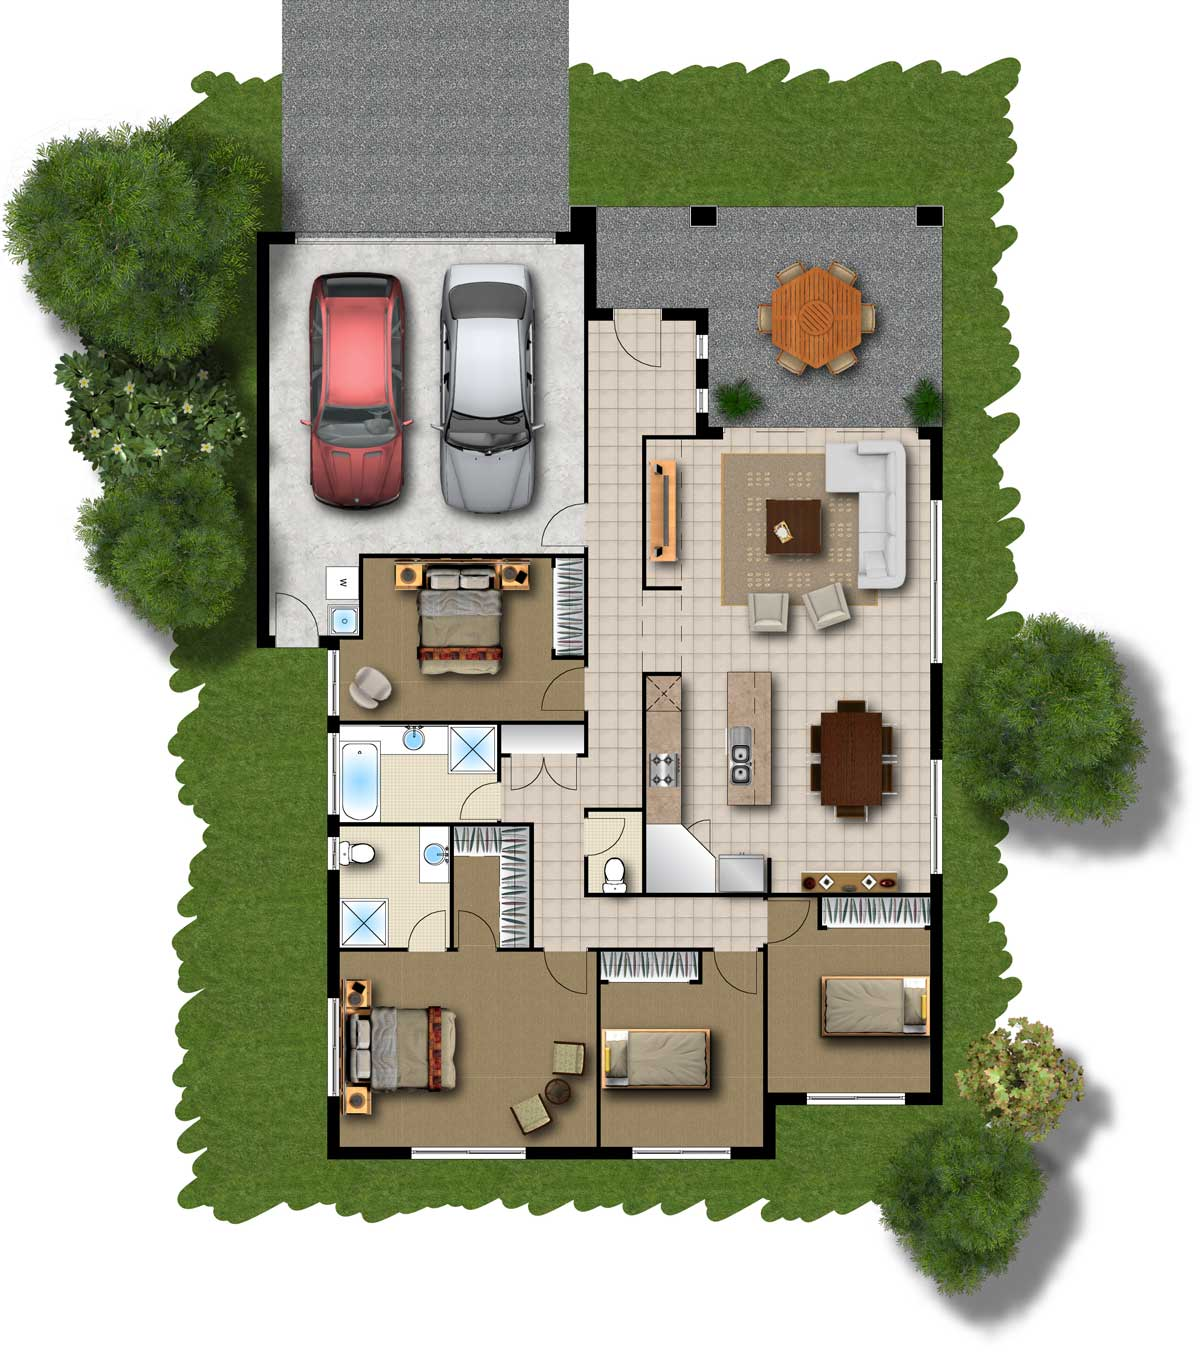 Multi Family House Small Simple Plan (Image 7 of 8)